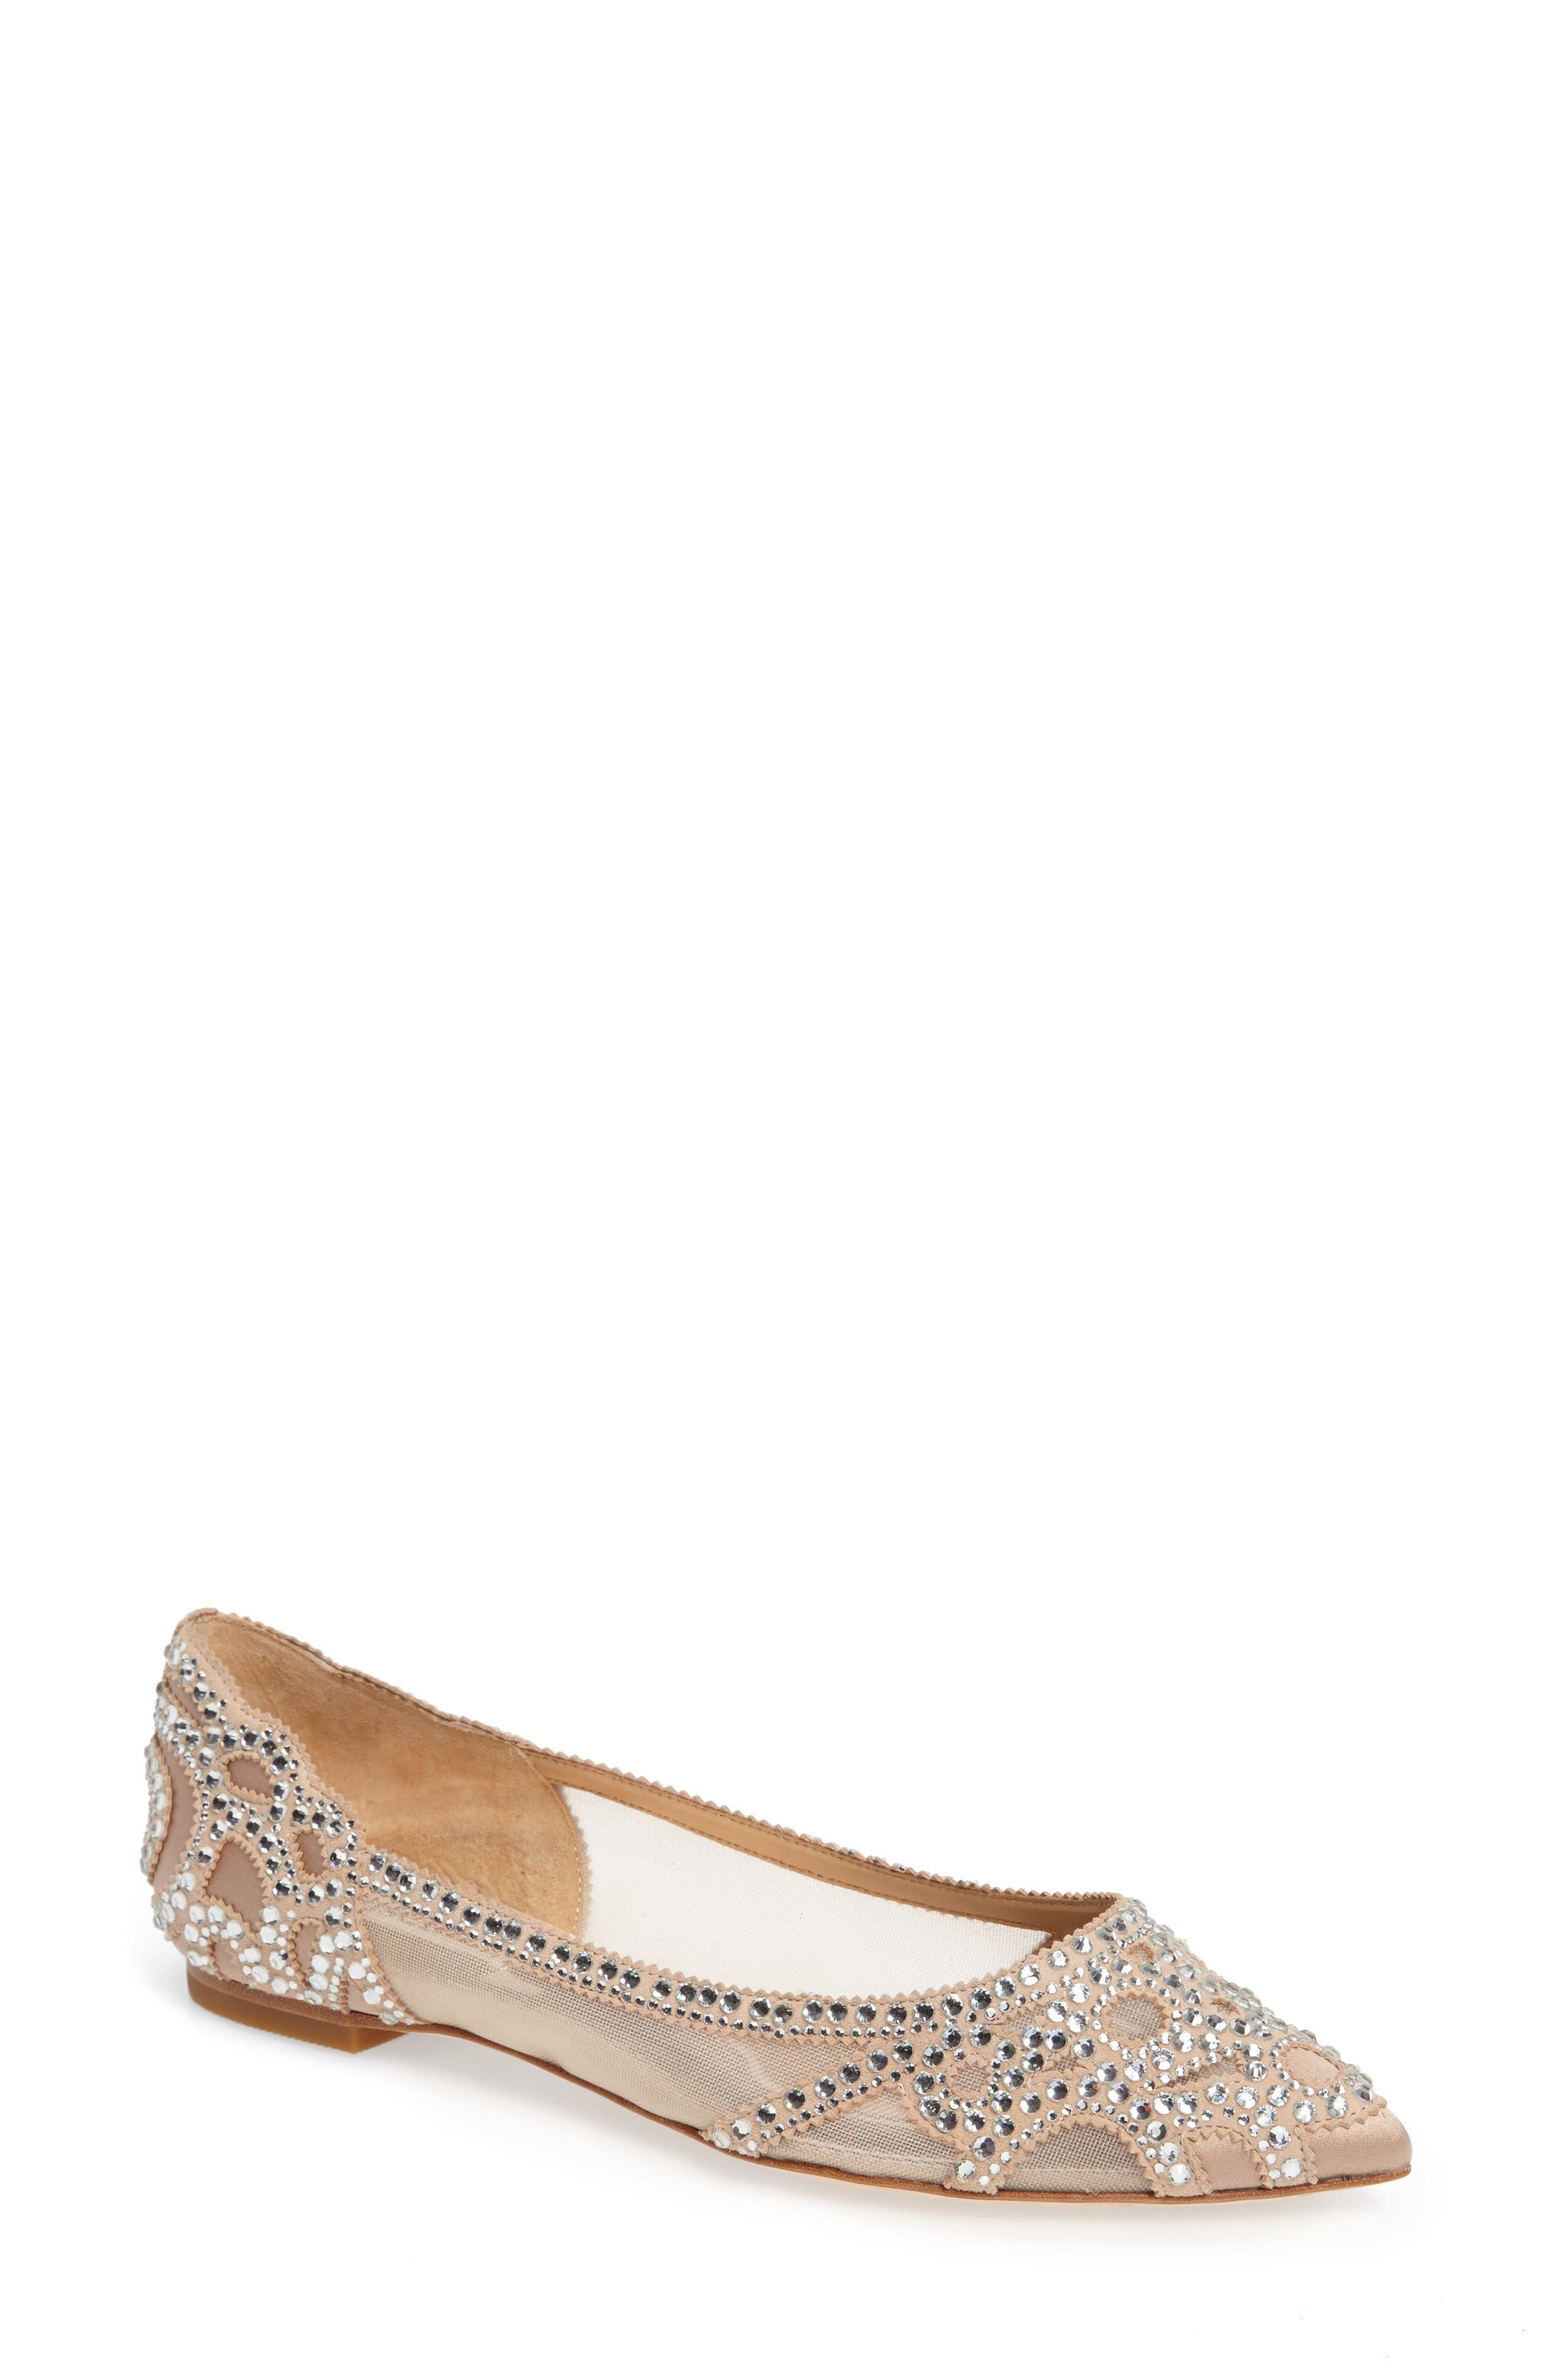 Gigi Crystal Pointy Toe Flat,                         Main,                         color, Latte Suede